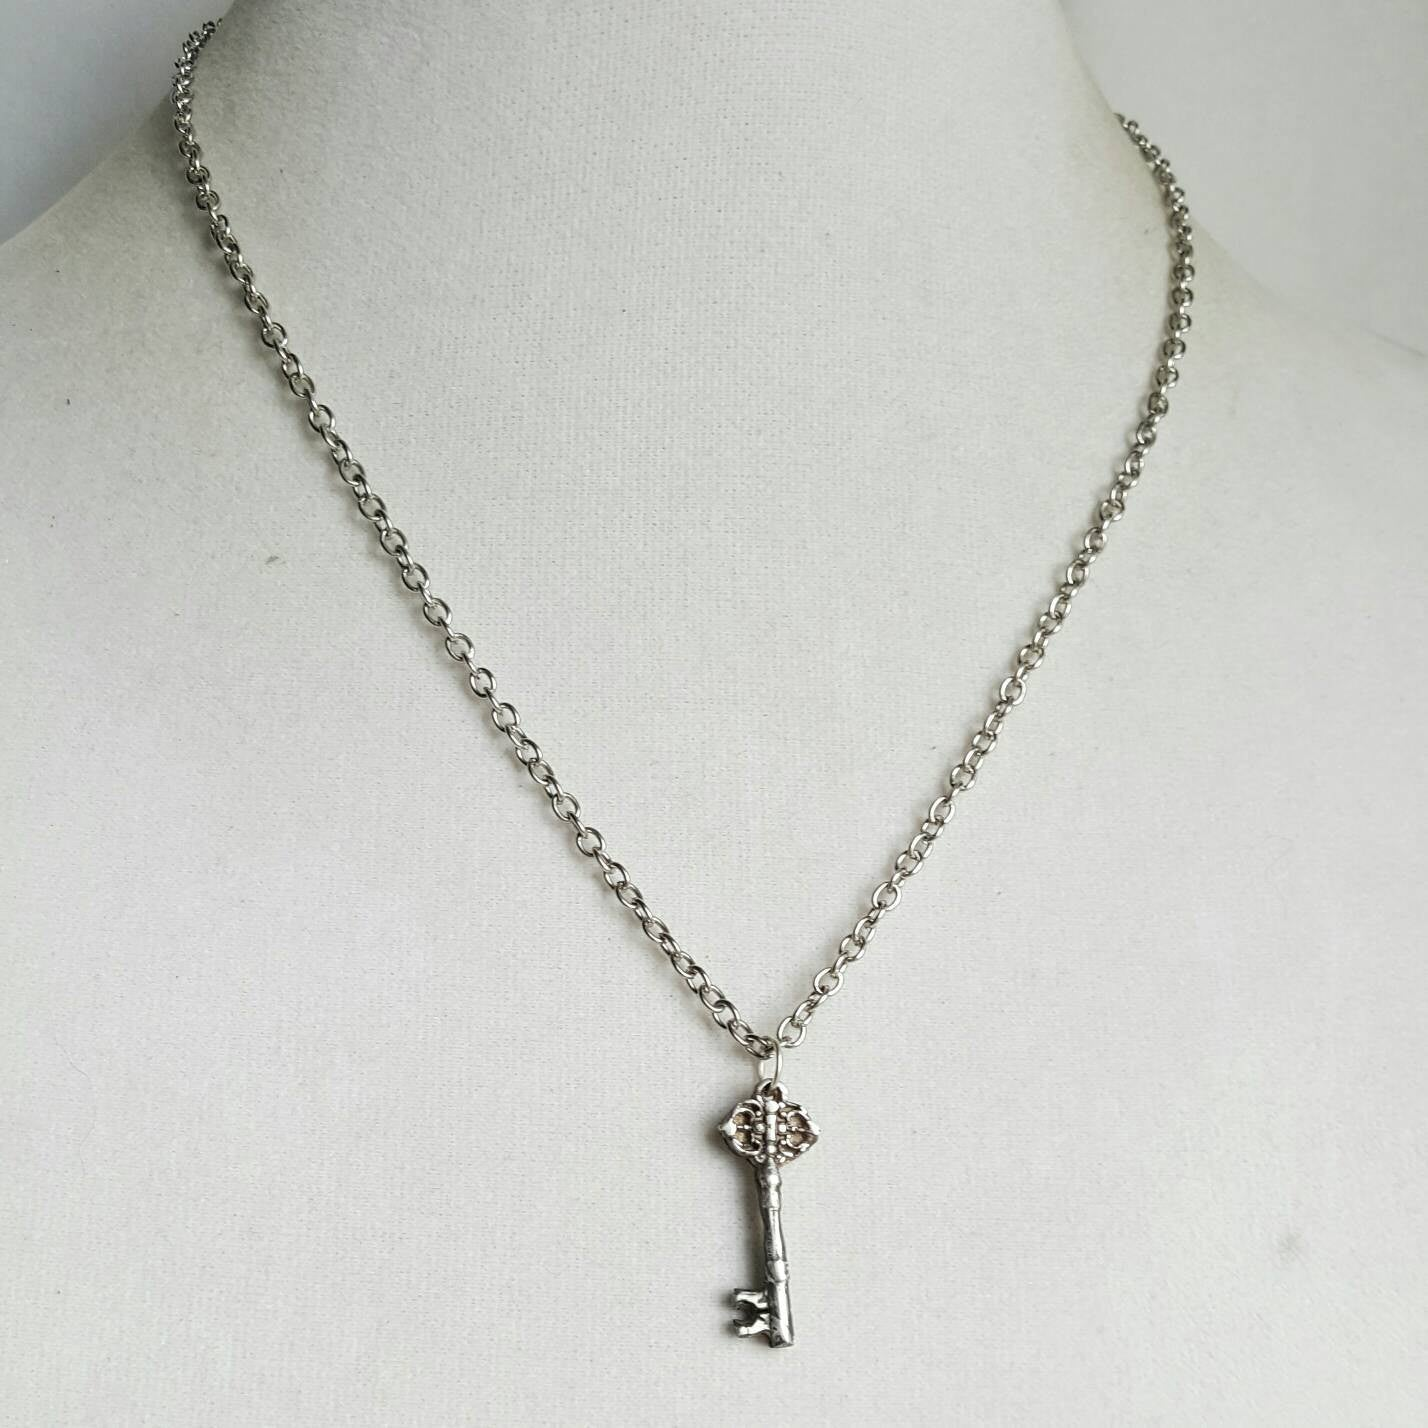 Mini Skeleton Key Necklace 925 Sterling Silver Jewelry - DRAVYNMOOR